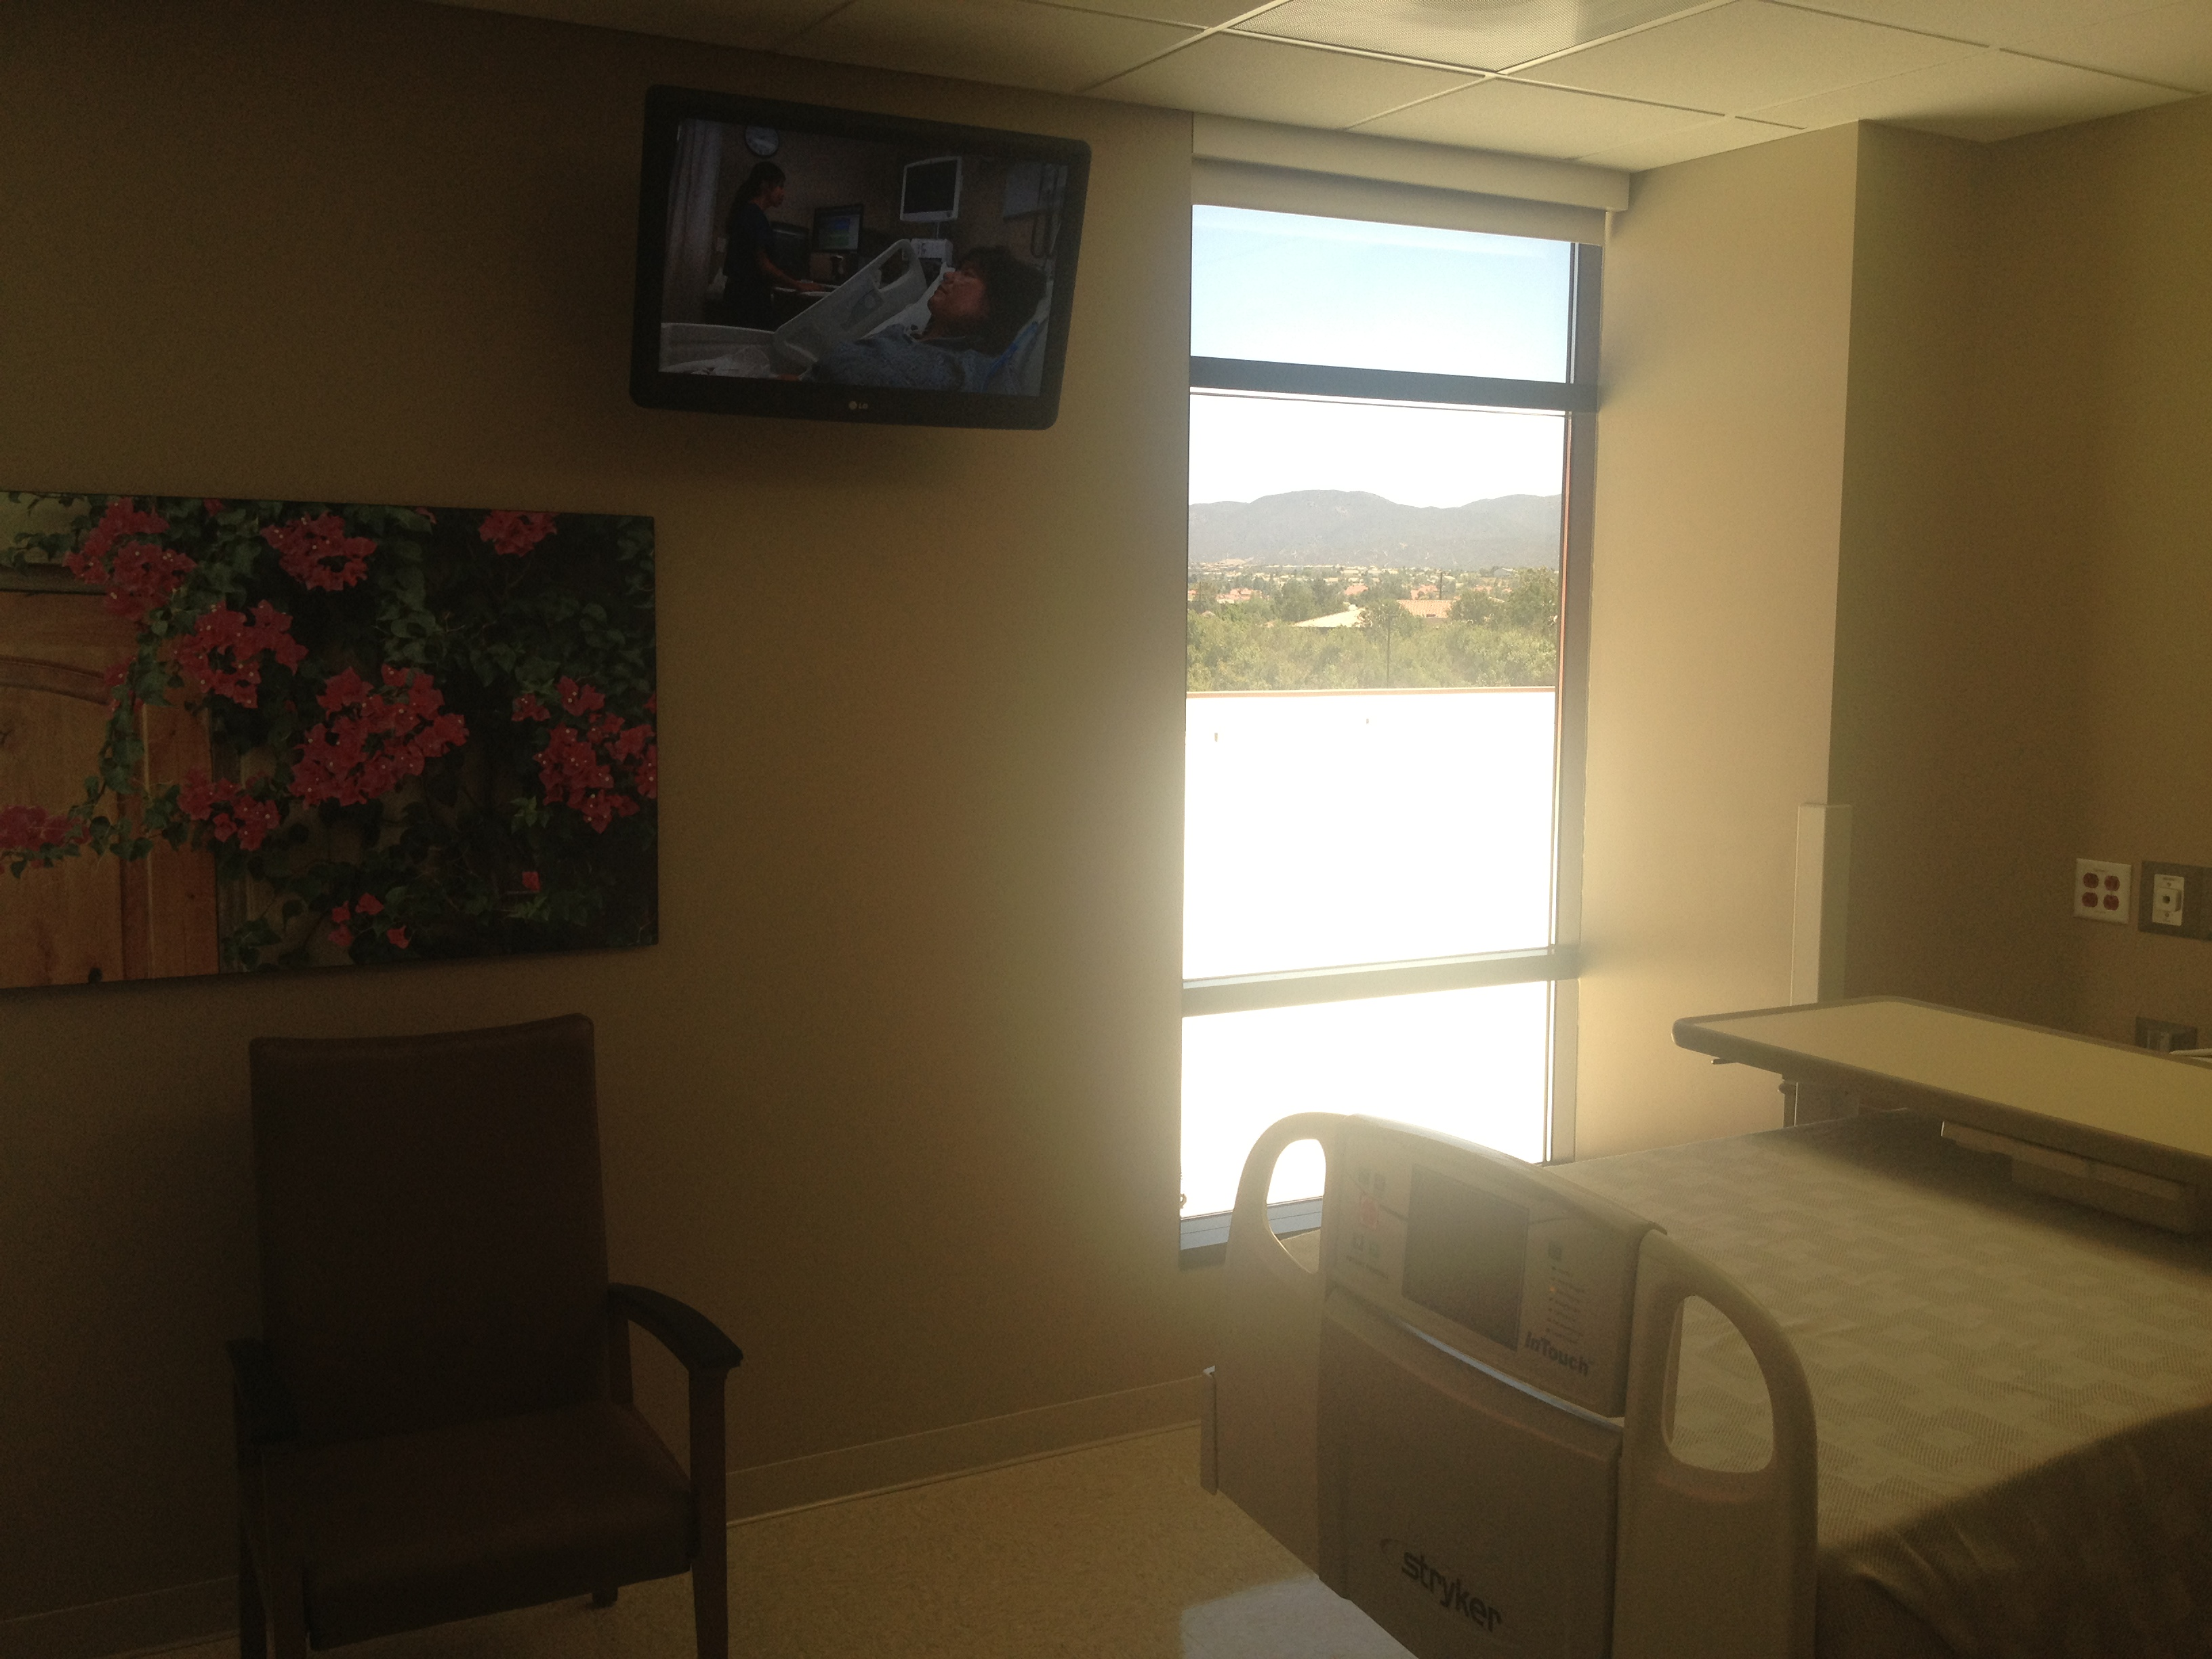 Temecula Valley Hospital welcomes community in fun family